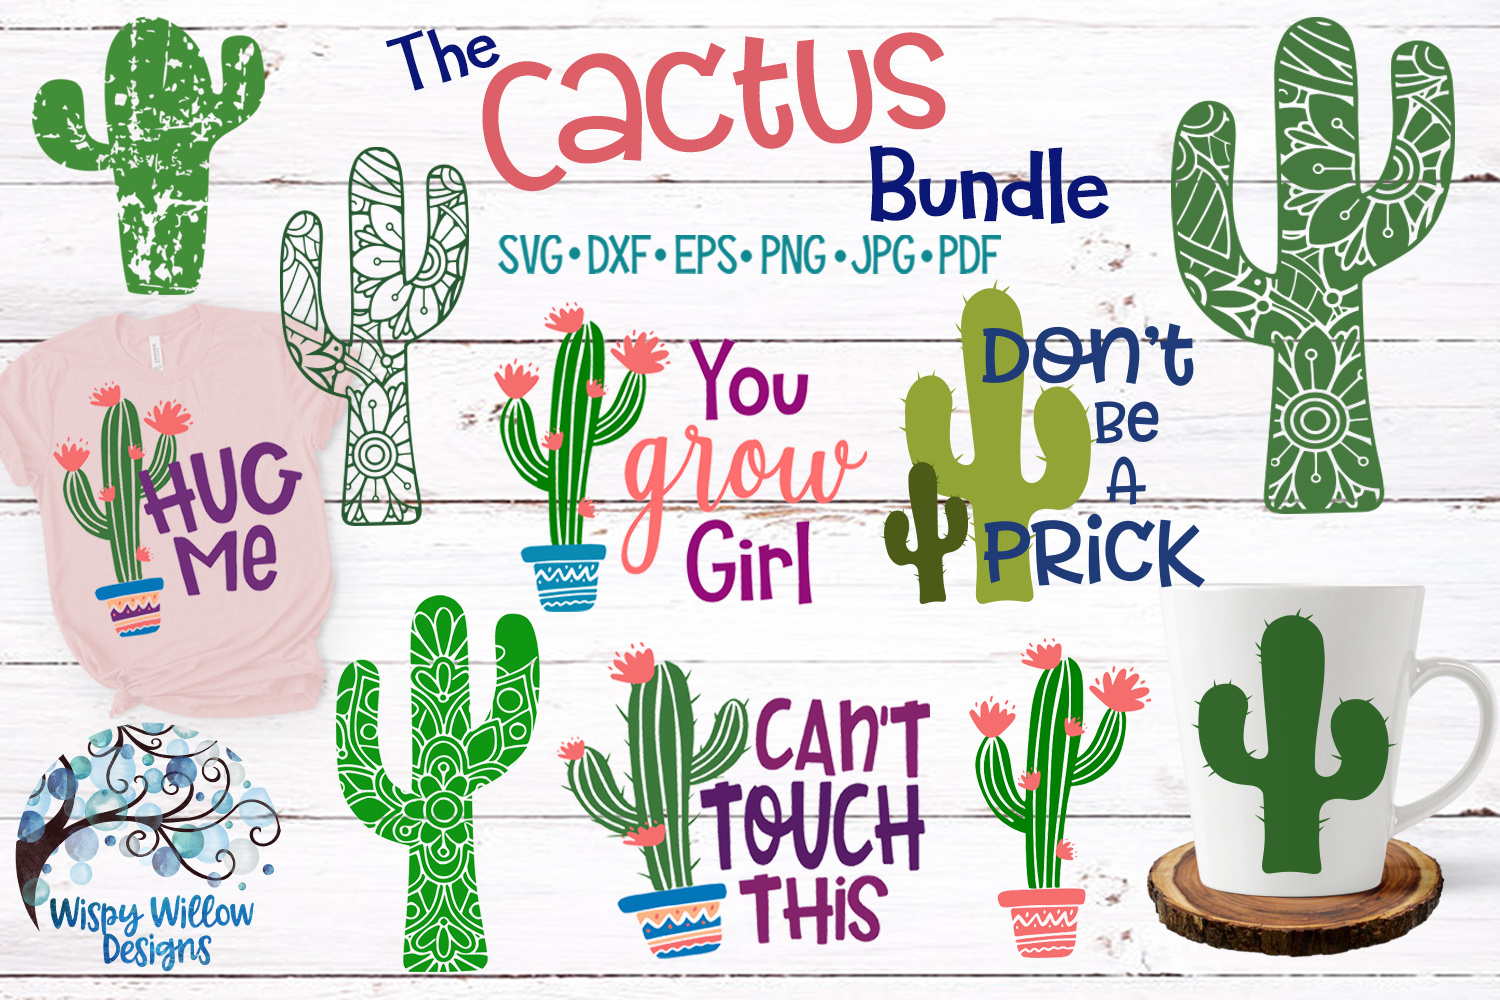 Download Free Cactus Bundle Graphic By Wispywillowdesigns Creative Fabrica for Cricut Explore, Silhouette and other cutting machines.